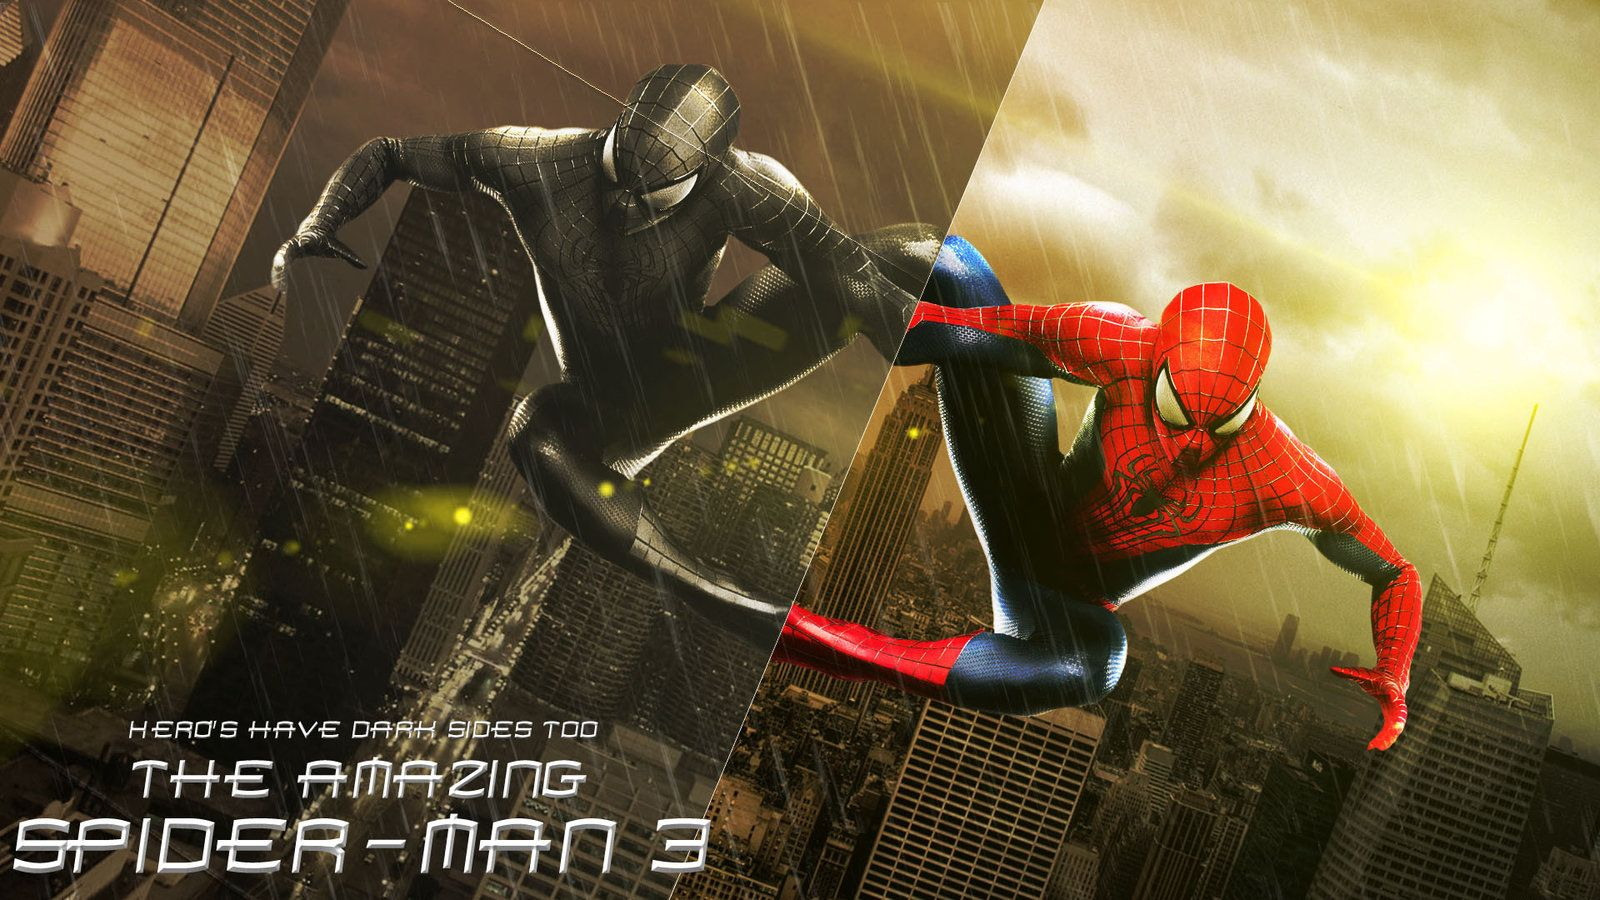 Full HD Online Movie Watch Spider-Man: Homecoming